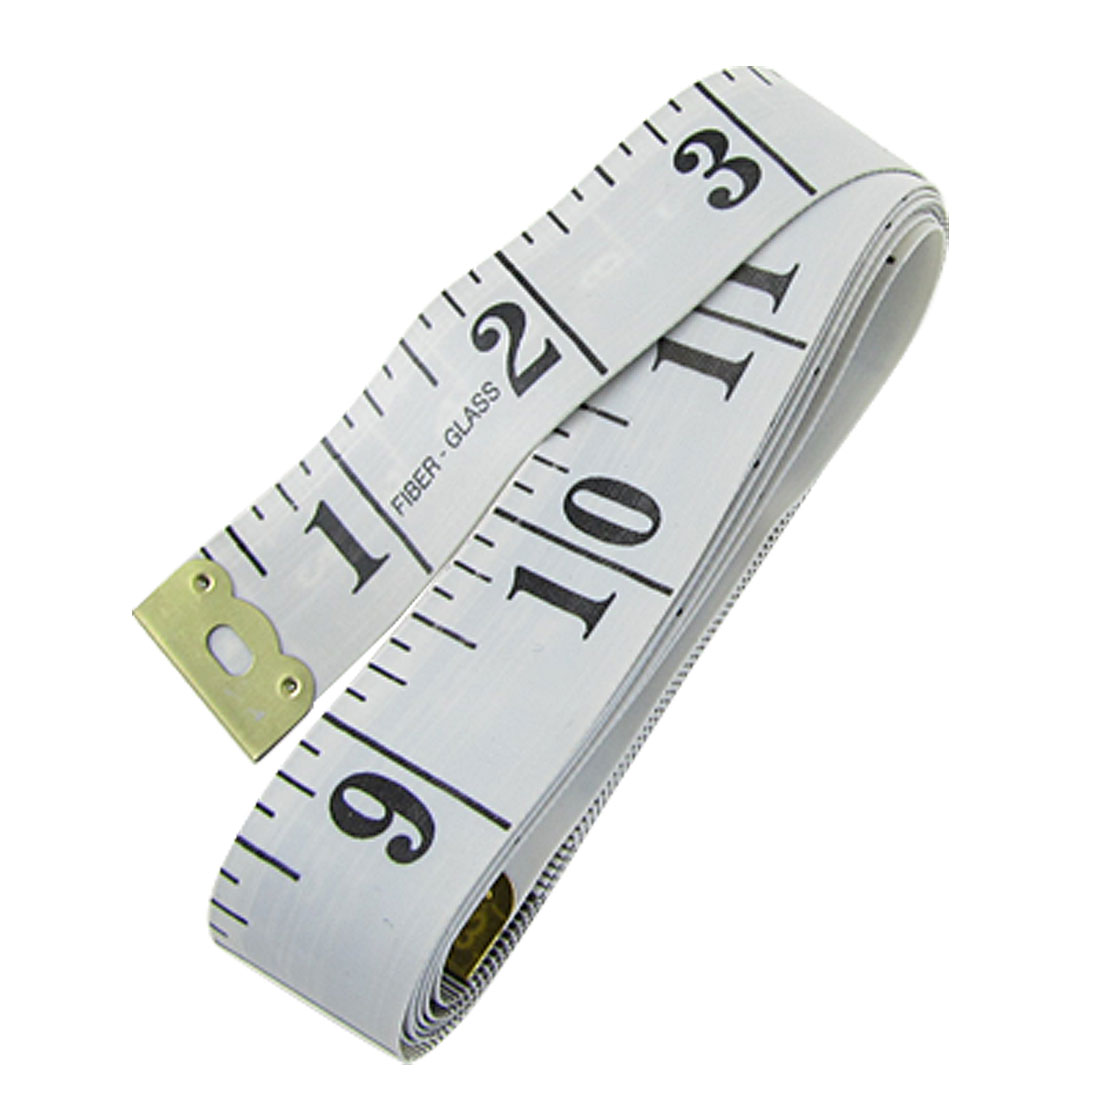 Tailor Seamstress 150cm 60 Inch Tape Measure Fiber Glass Ruler White